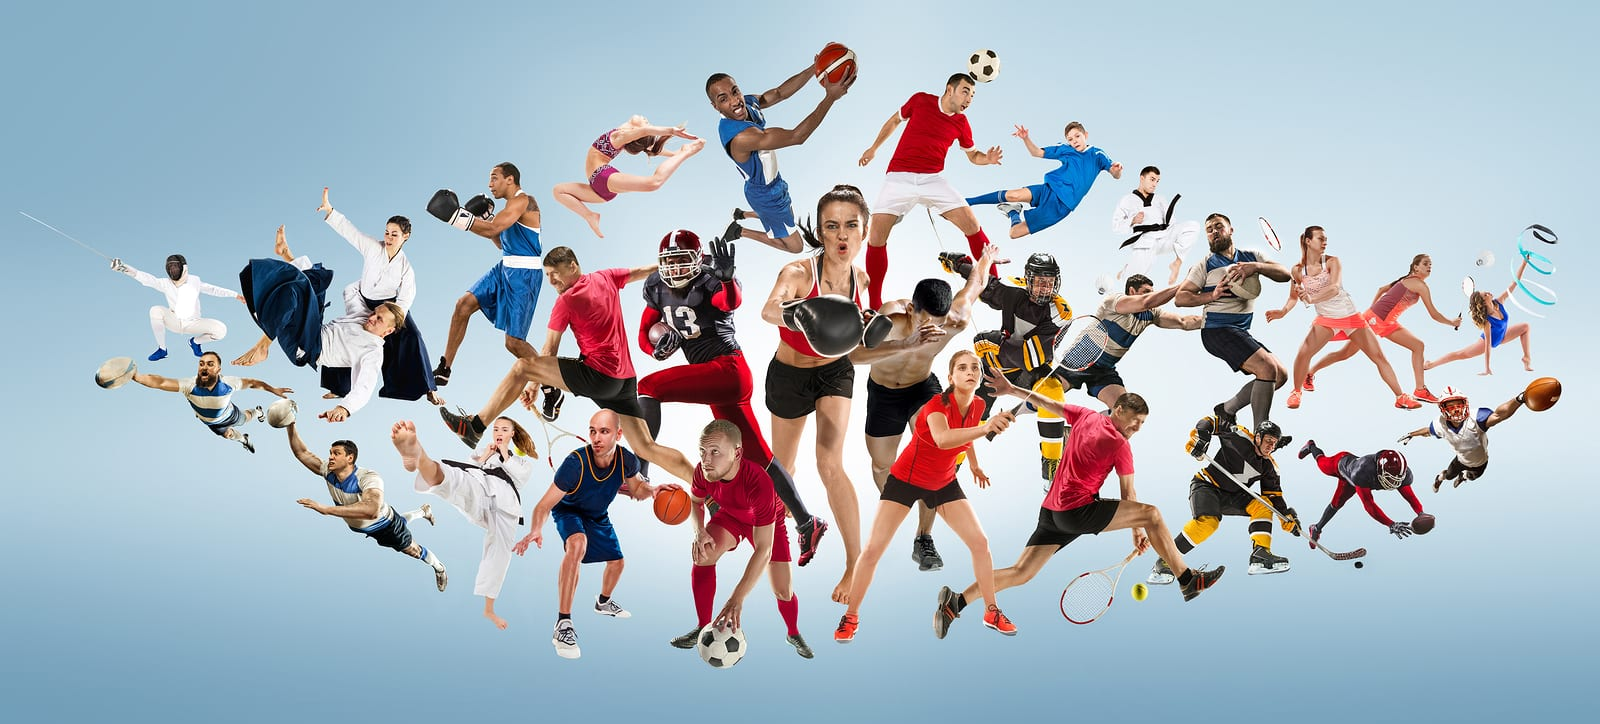 Sport collage featuring people doing kickboxing, soccer, american football, basketball, ice hockey, badminton, taekwondo, aikido, tennis, rugby players and gymnast isolated on blue background